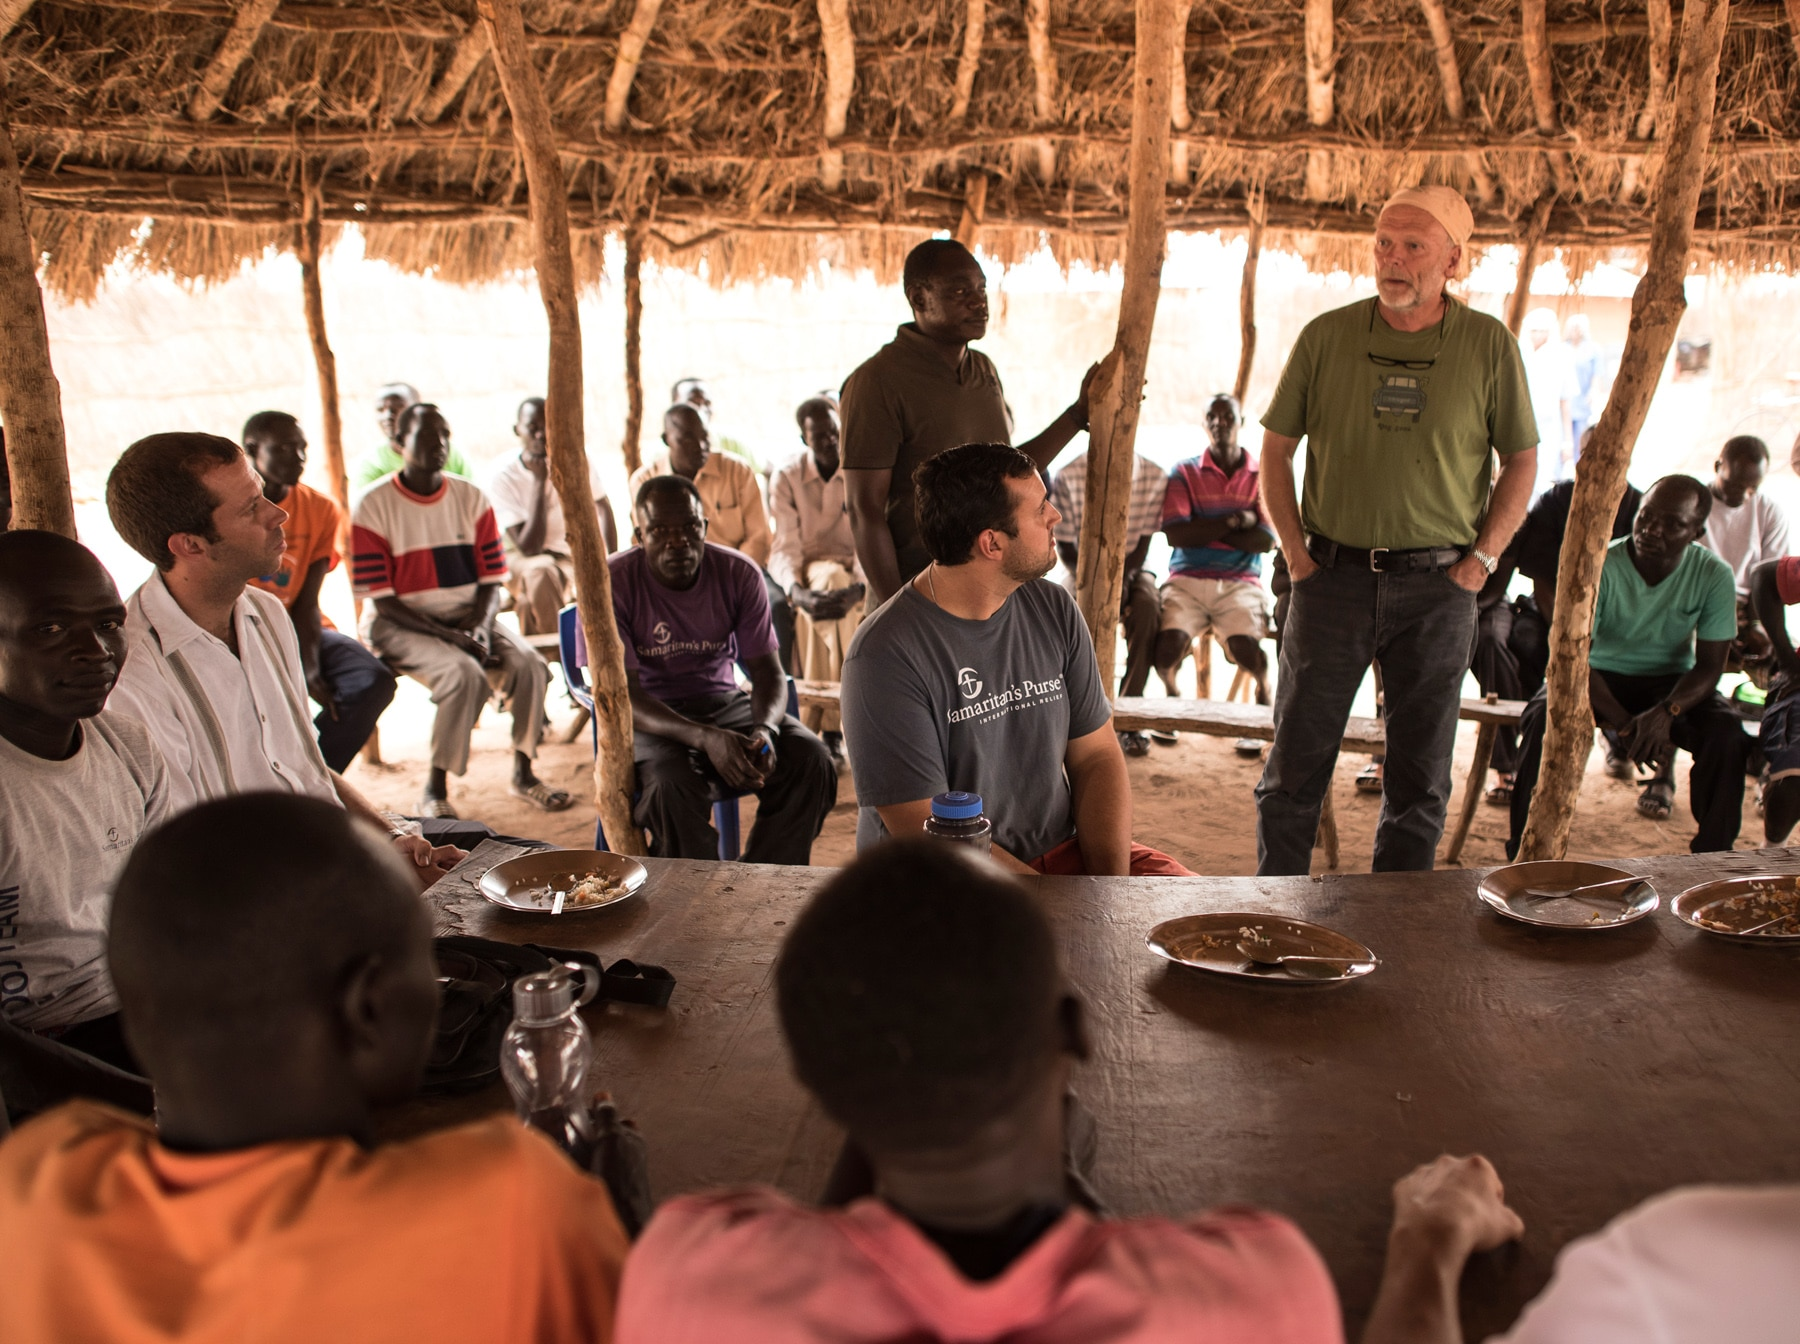 Ken Isaacs standing under hut, with men standing and seated around him (Samaritan's Purse)